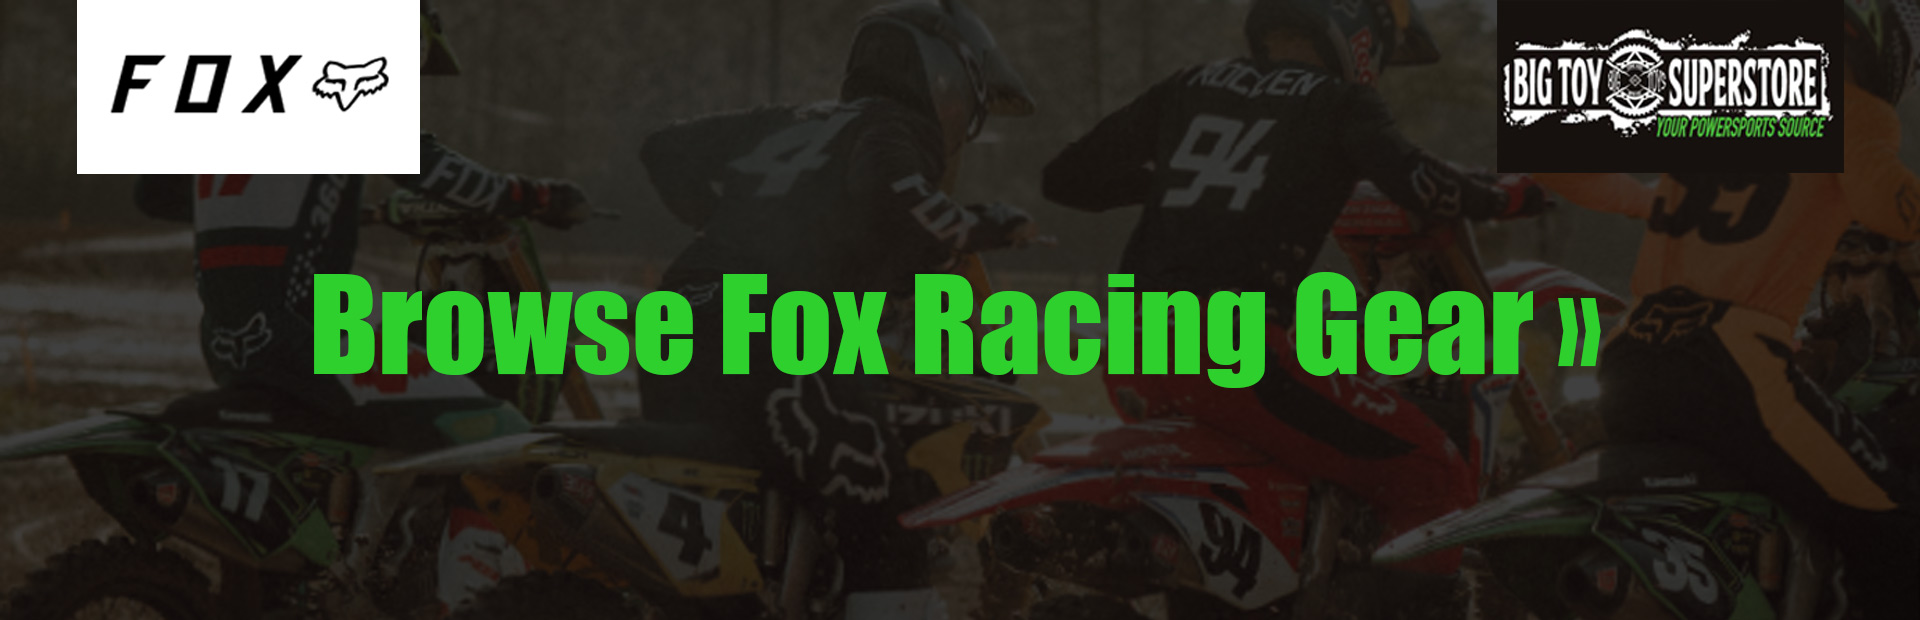 Click here to browse Fox Racing gear.